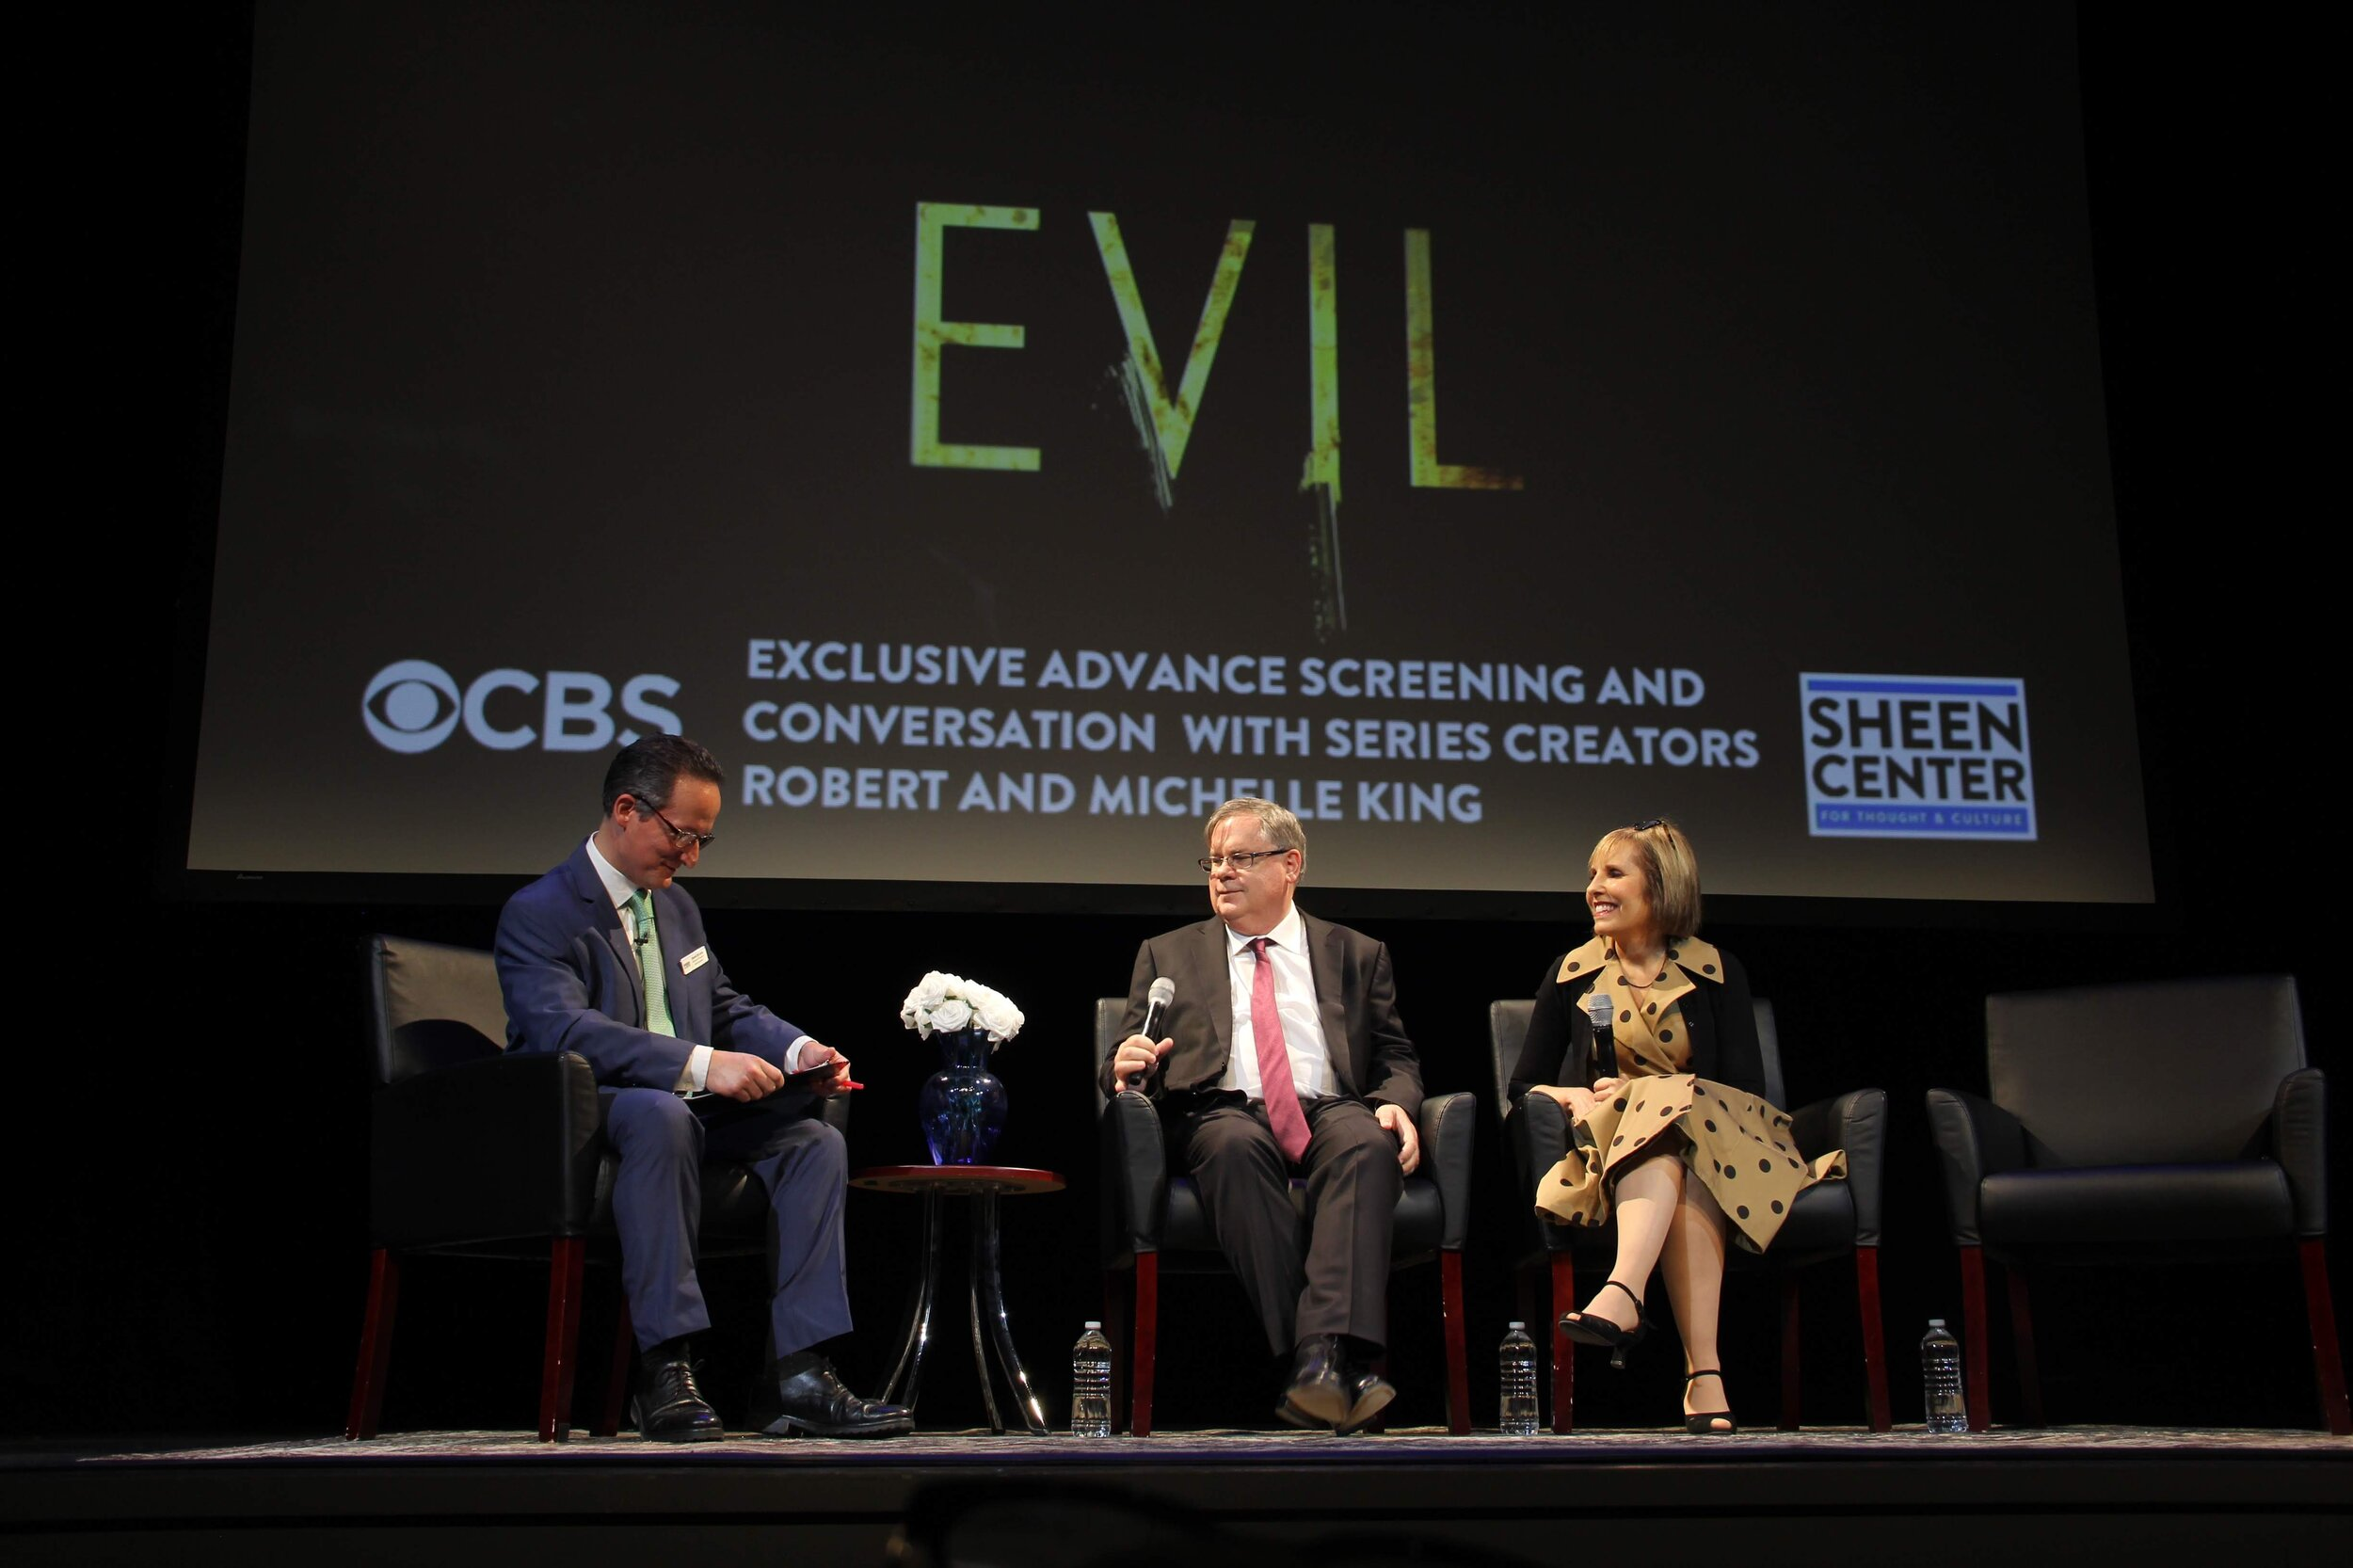 """Robert (center) and Michelle King (right) answer questions after premiering their new series """"Evil"""" in New York Sept. 20. Photo by Elizabeth Vandenboom."""